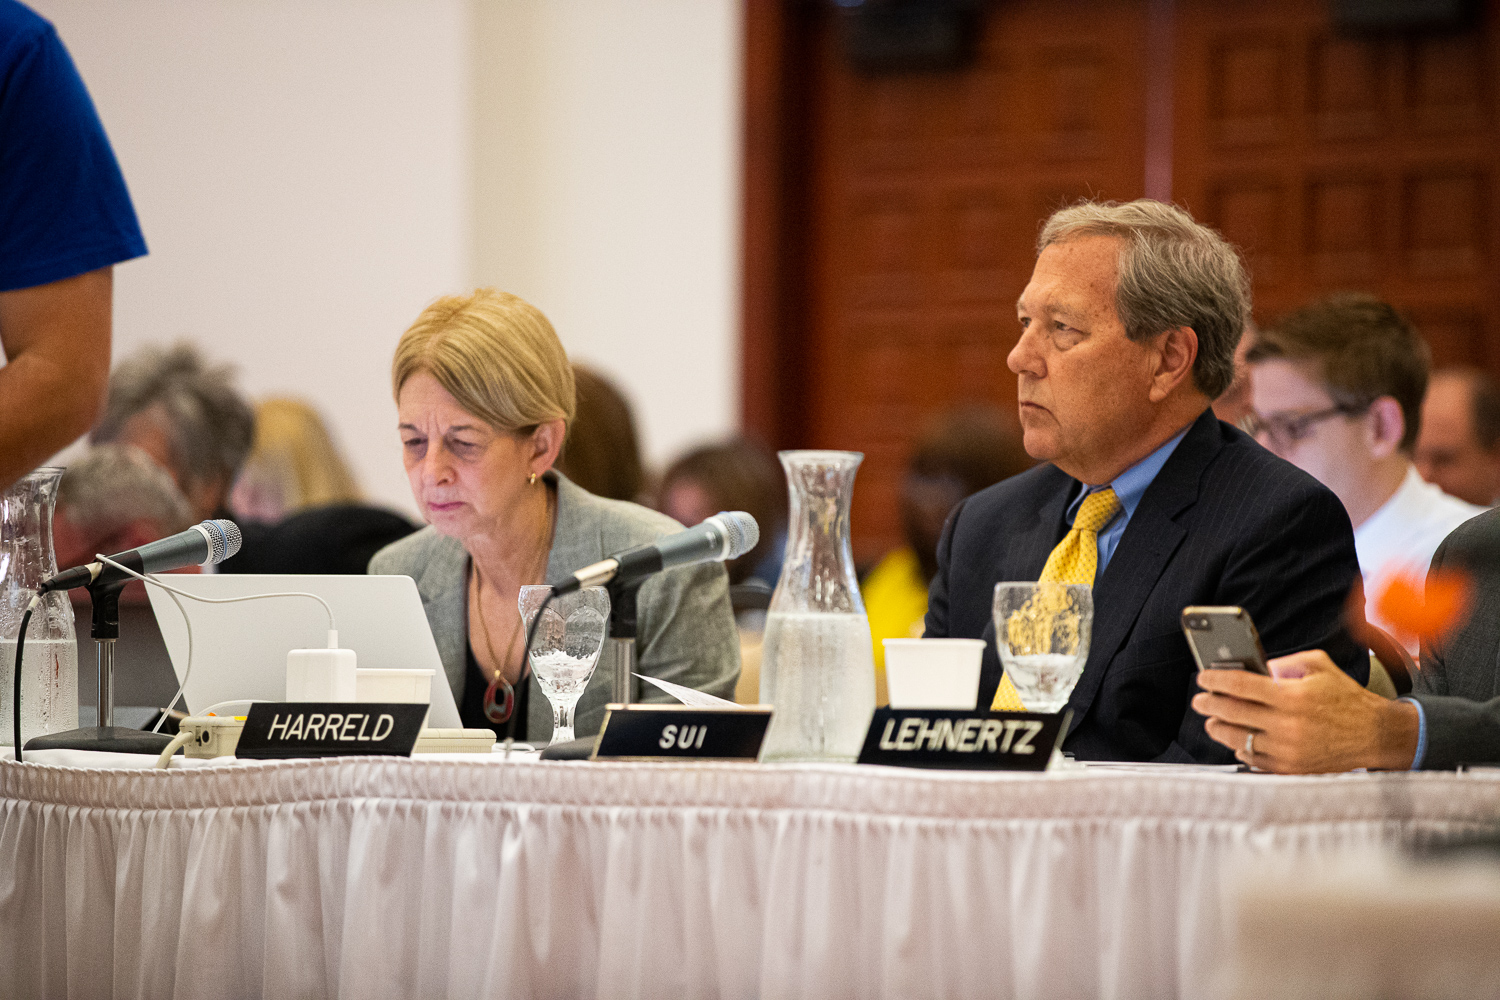 University of Iowa President Bruce Harreld and Interim Provost Sue Curry listen to a presentation during an Iowa Board of Regents meeting at the Iowa State Alumni Center in Ames, Iowa, on Thursday, June 6, 2019. The Regents voted in favor of a four percent tuition increase starting in the fall semester of 2019.